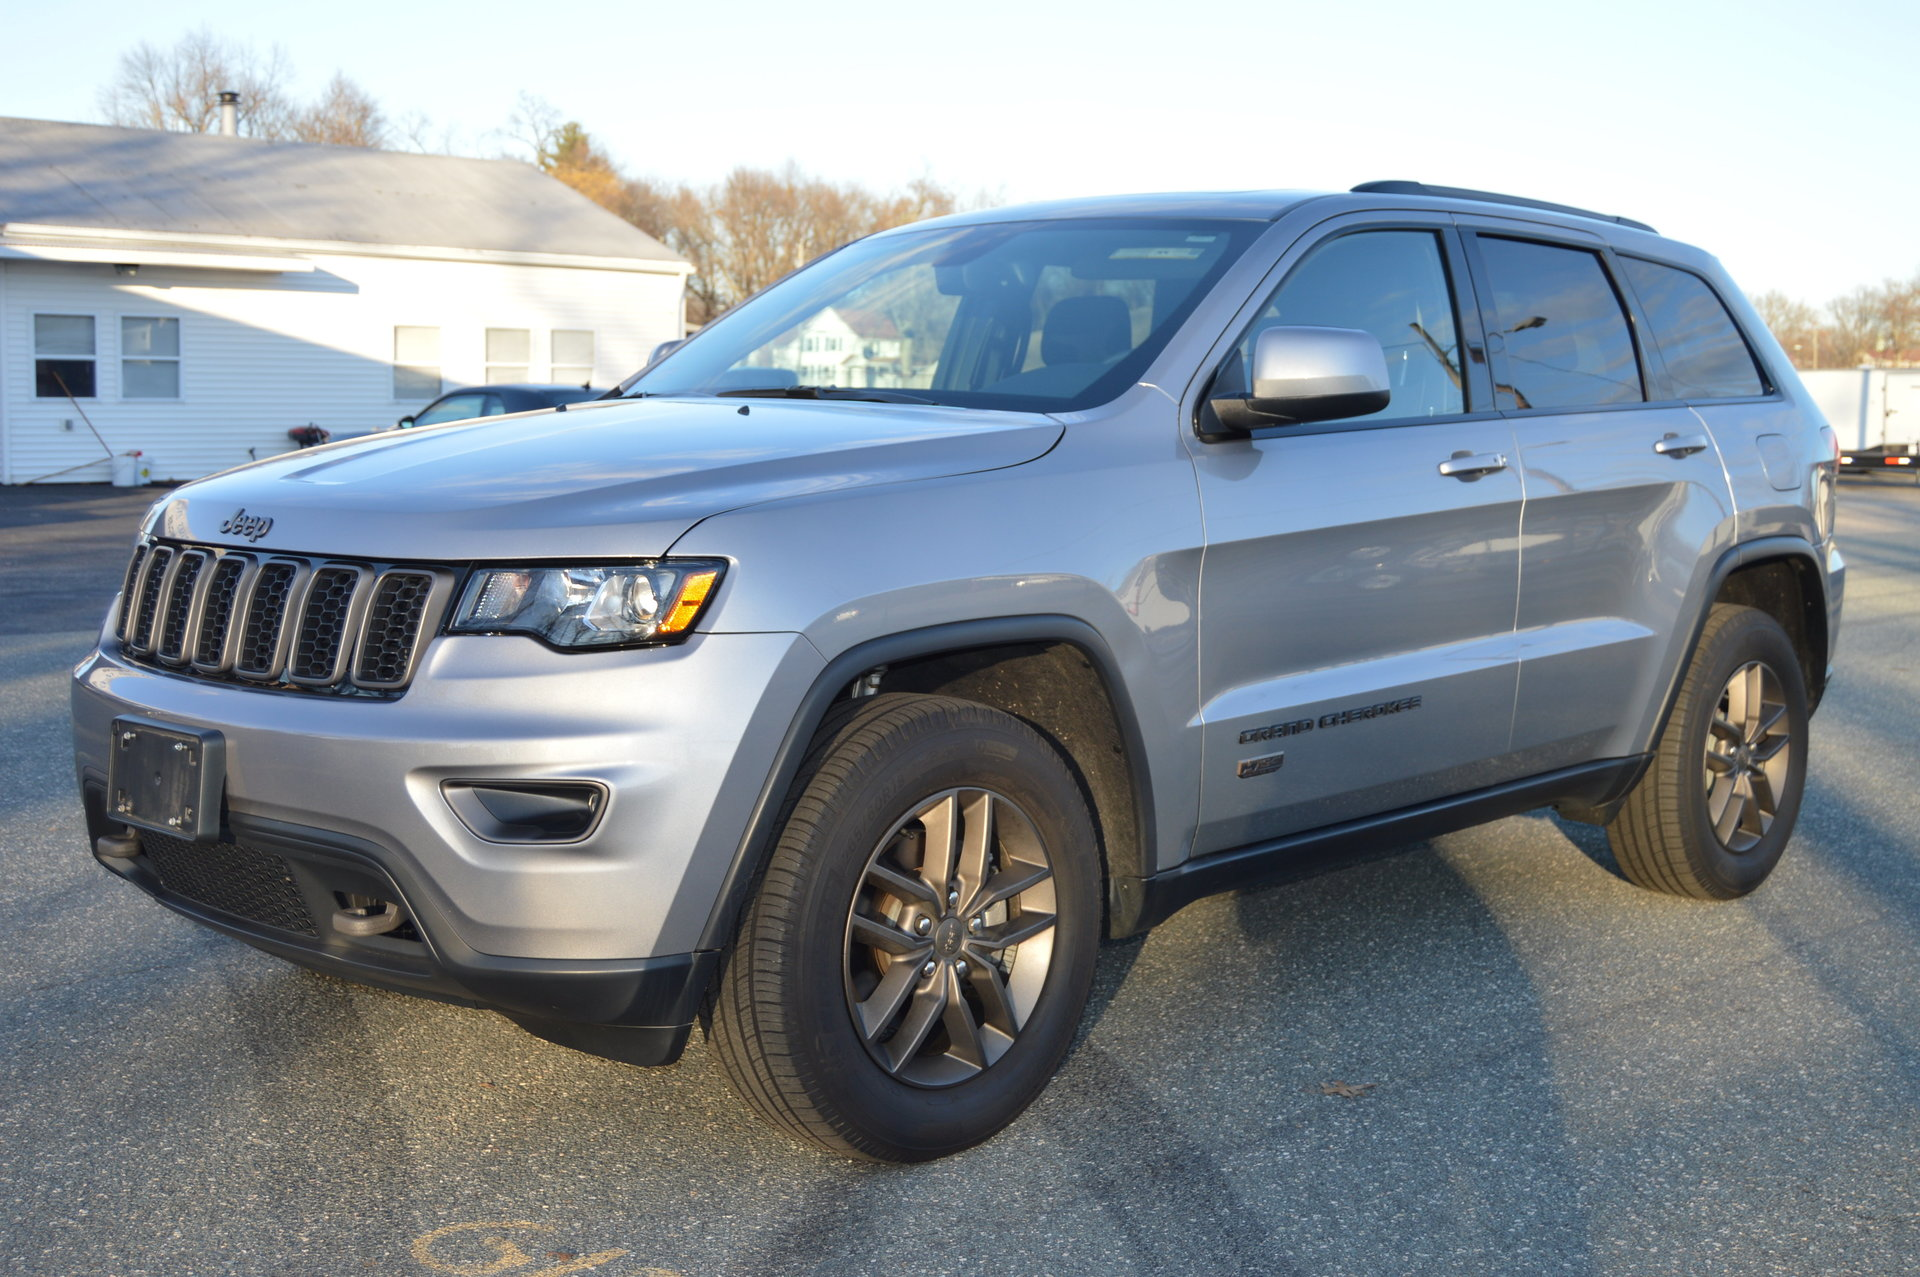 2016 jeep grand cherokee 75th anniversary edition for sale 82944 mcg. Black Bedroom Furniture Sets. Home Design Ideas